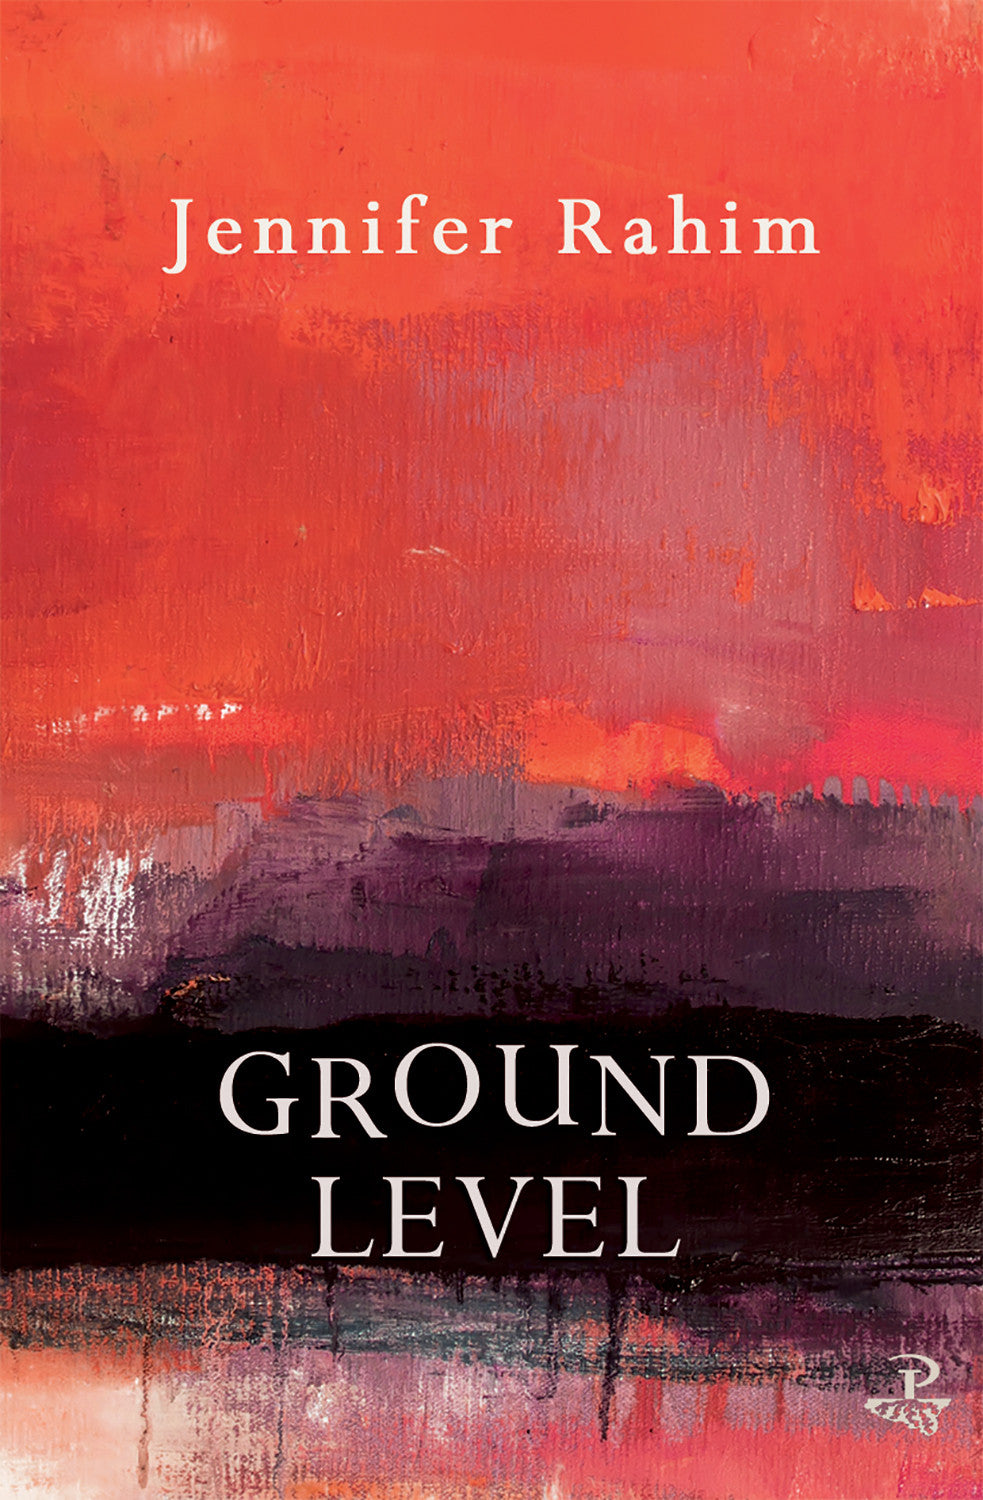 Ground Level